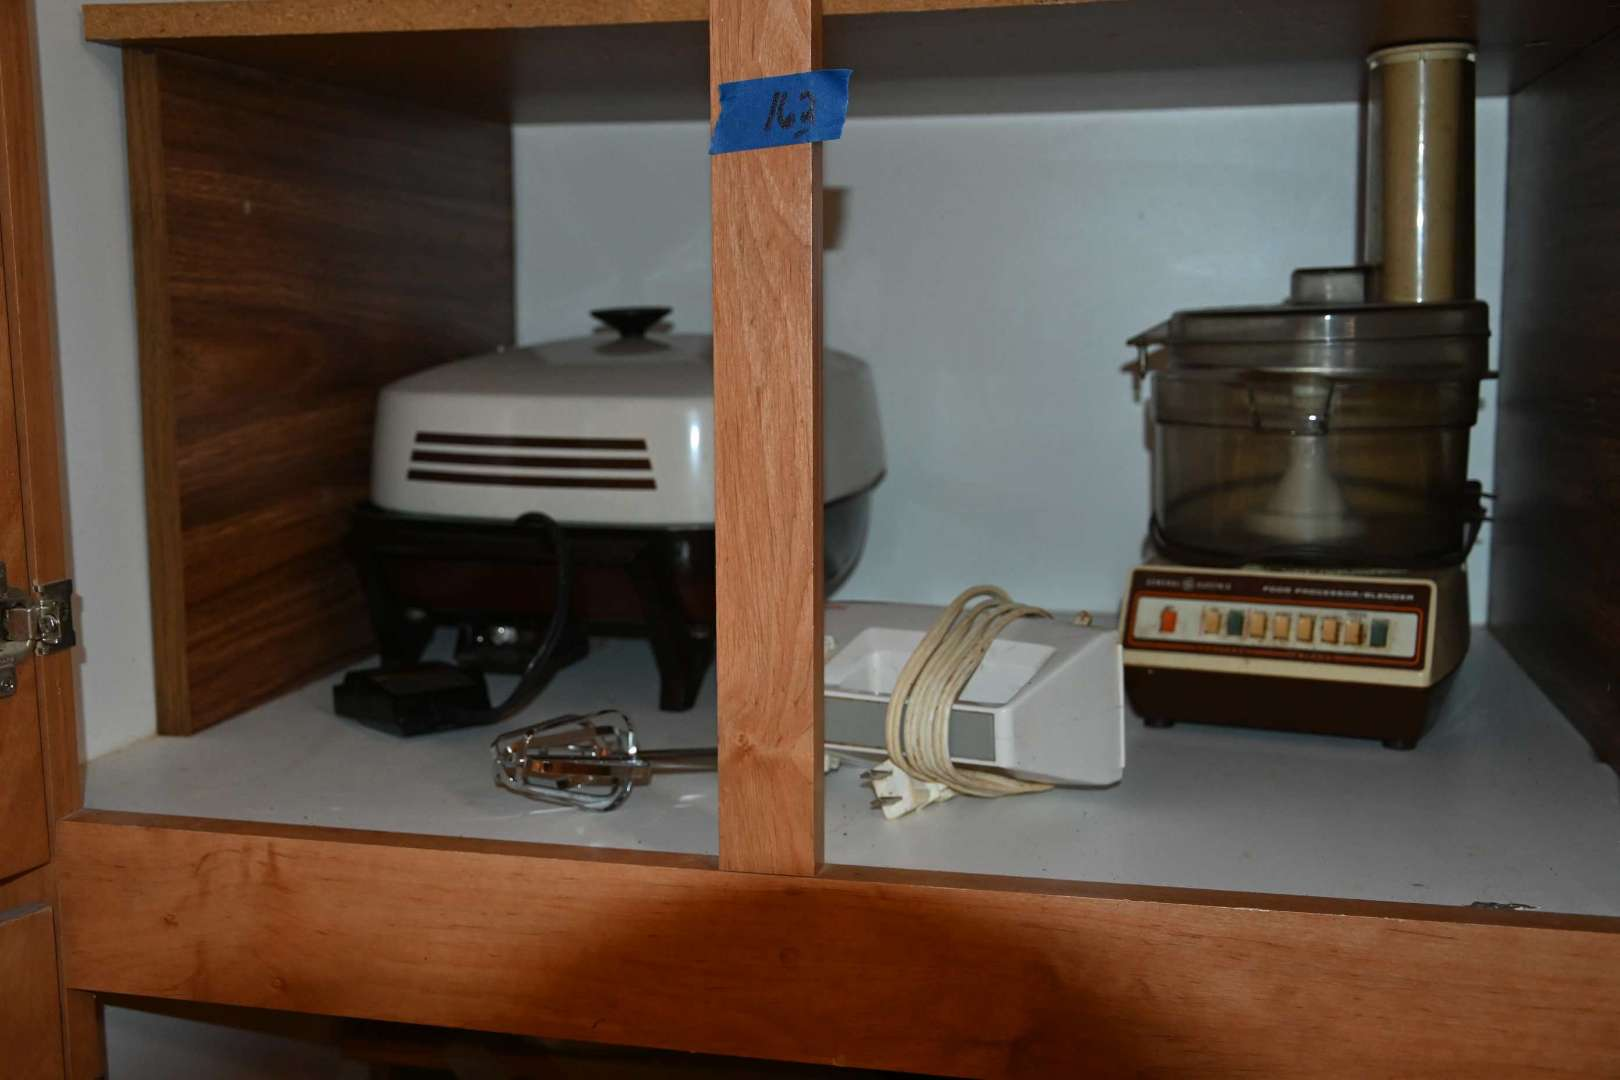 Lot # 162 Contents of top tall cabinet